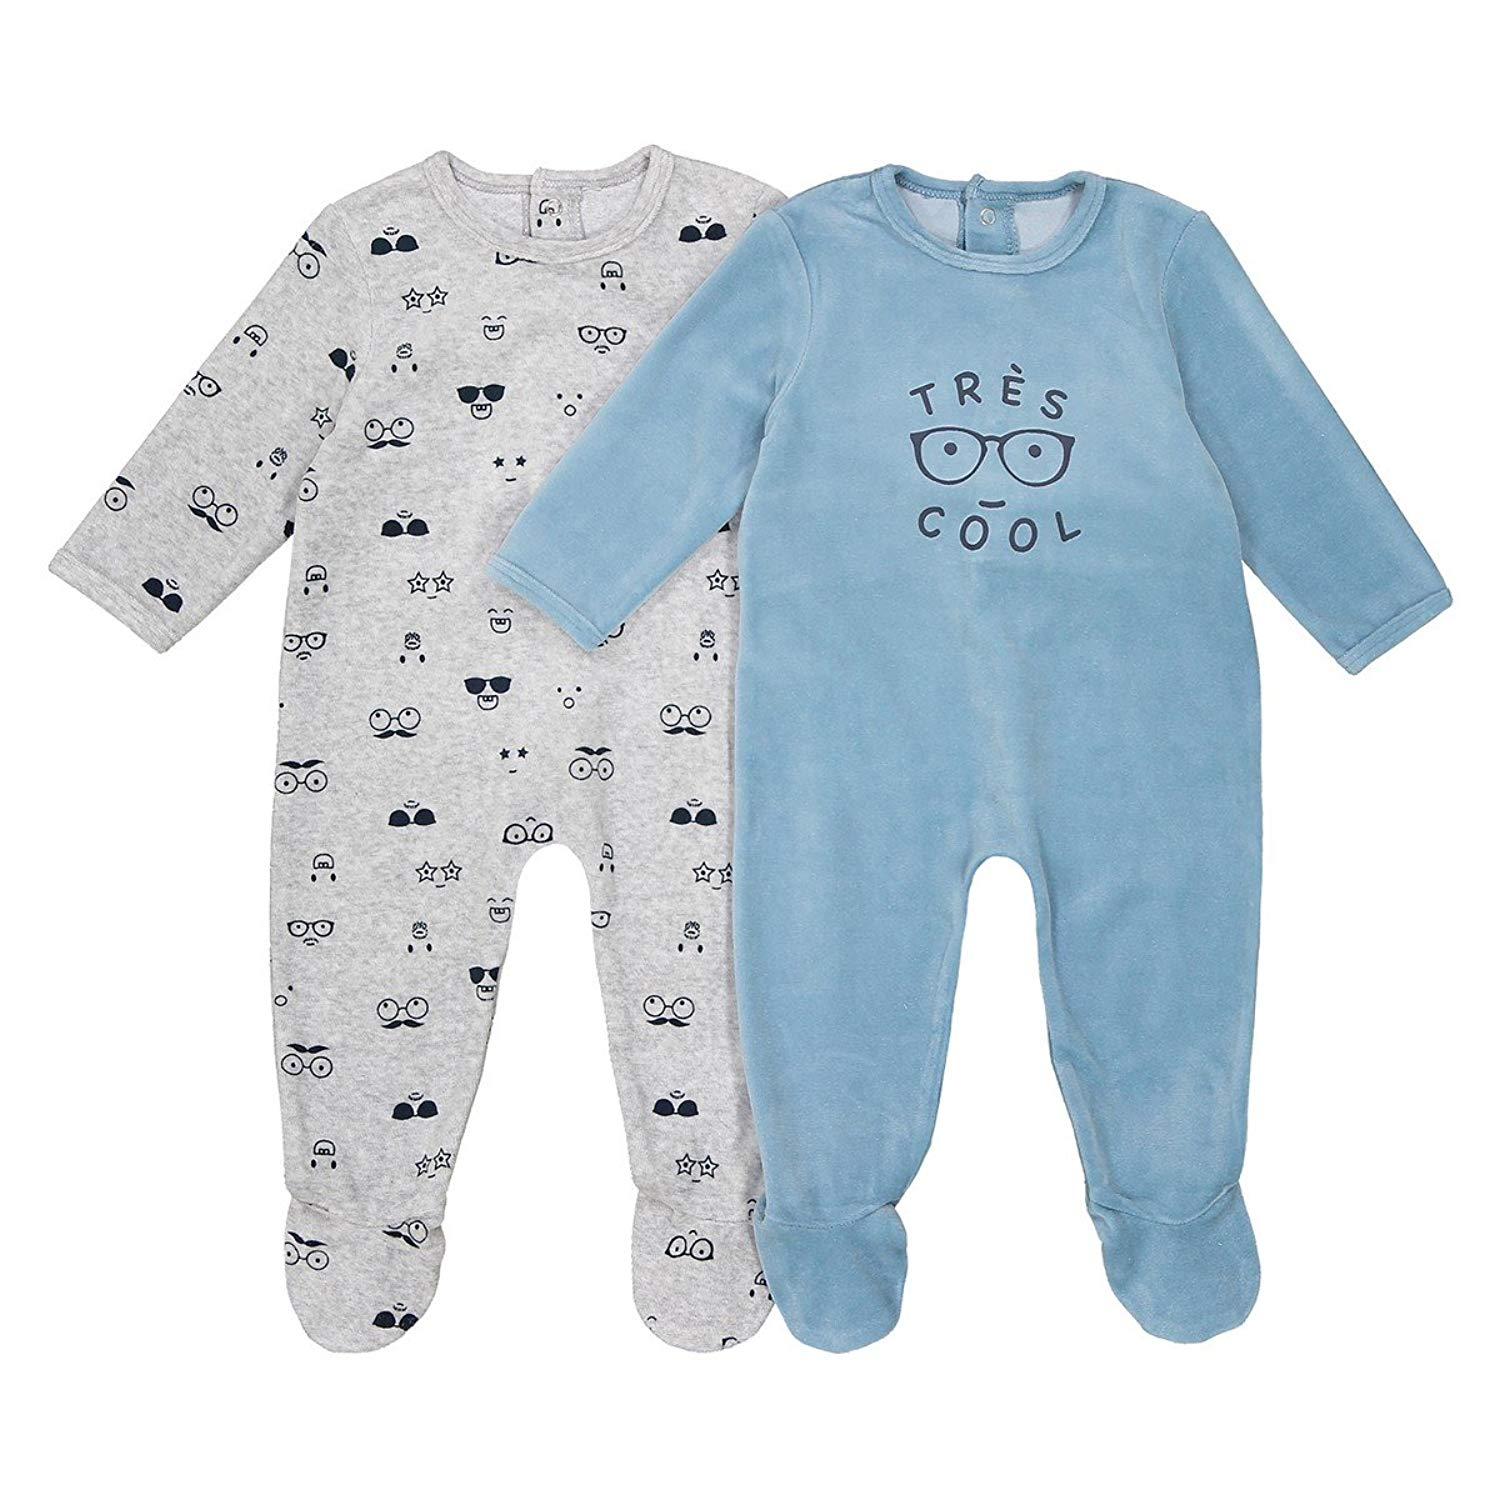 22c5ff119 Get Quotations · La Redoute Collections Big Boys Pack of 2 Printed  Sleepsuits